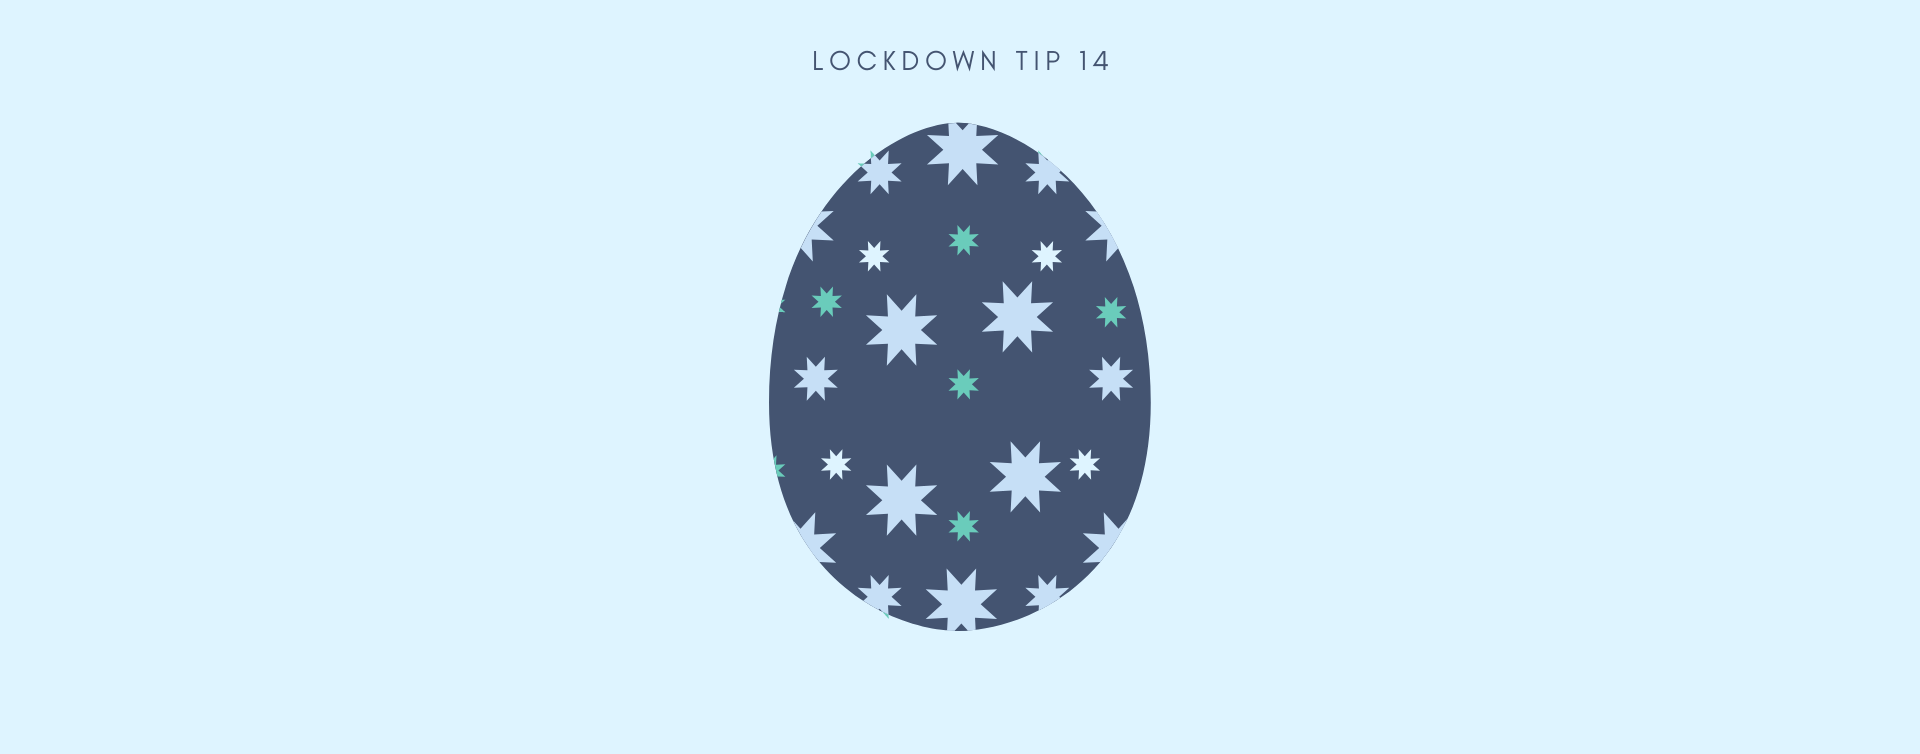 MCSA Lockdown Tip 14